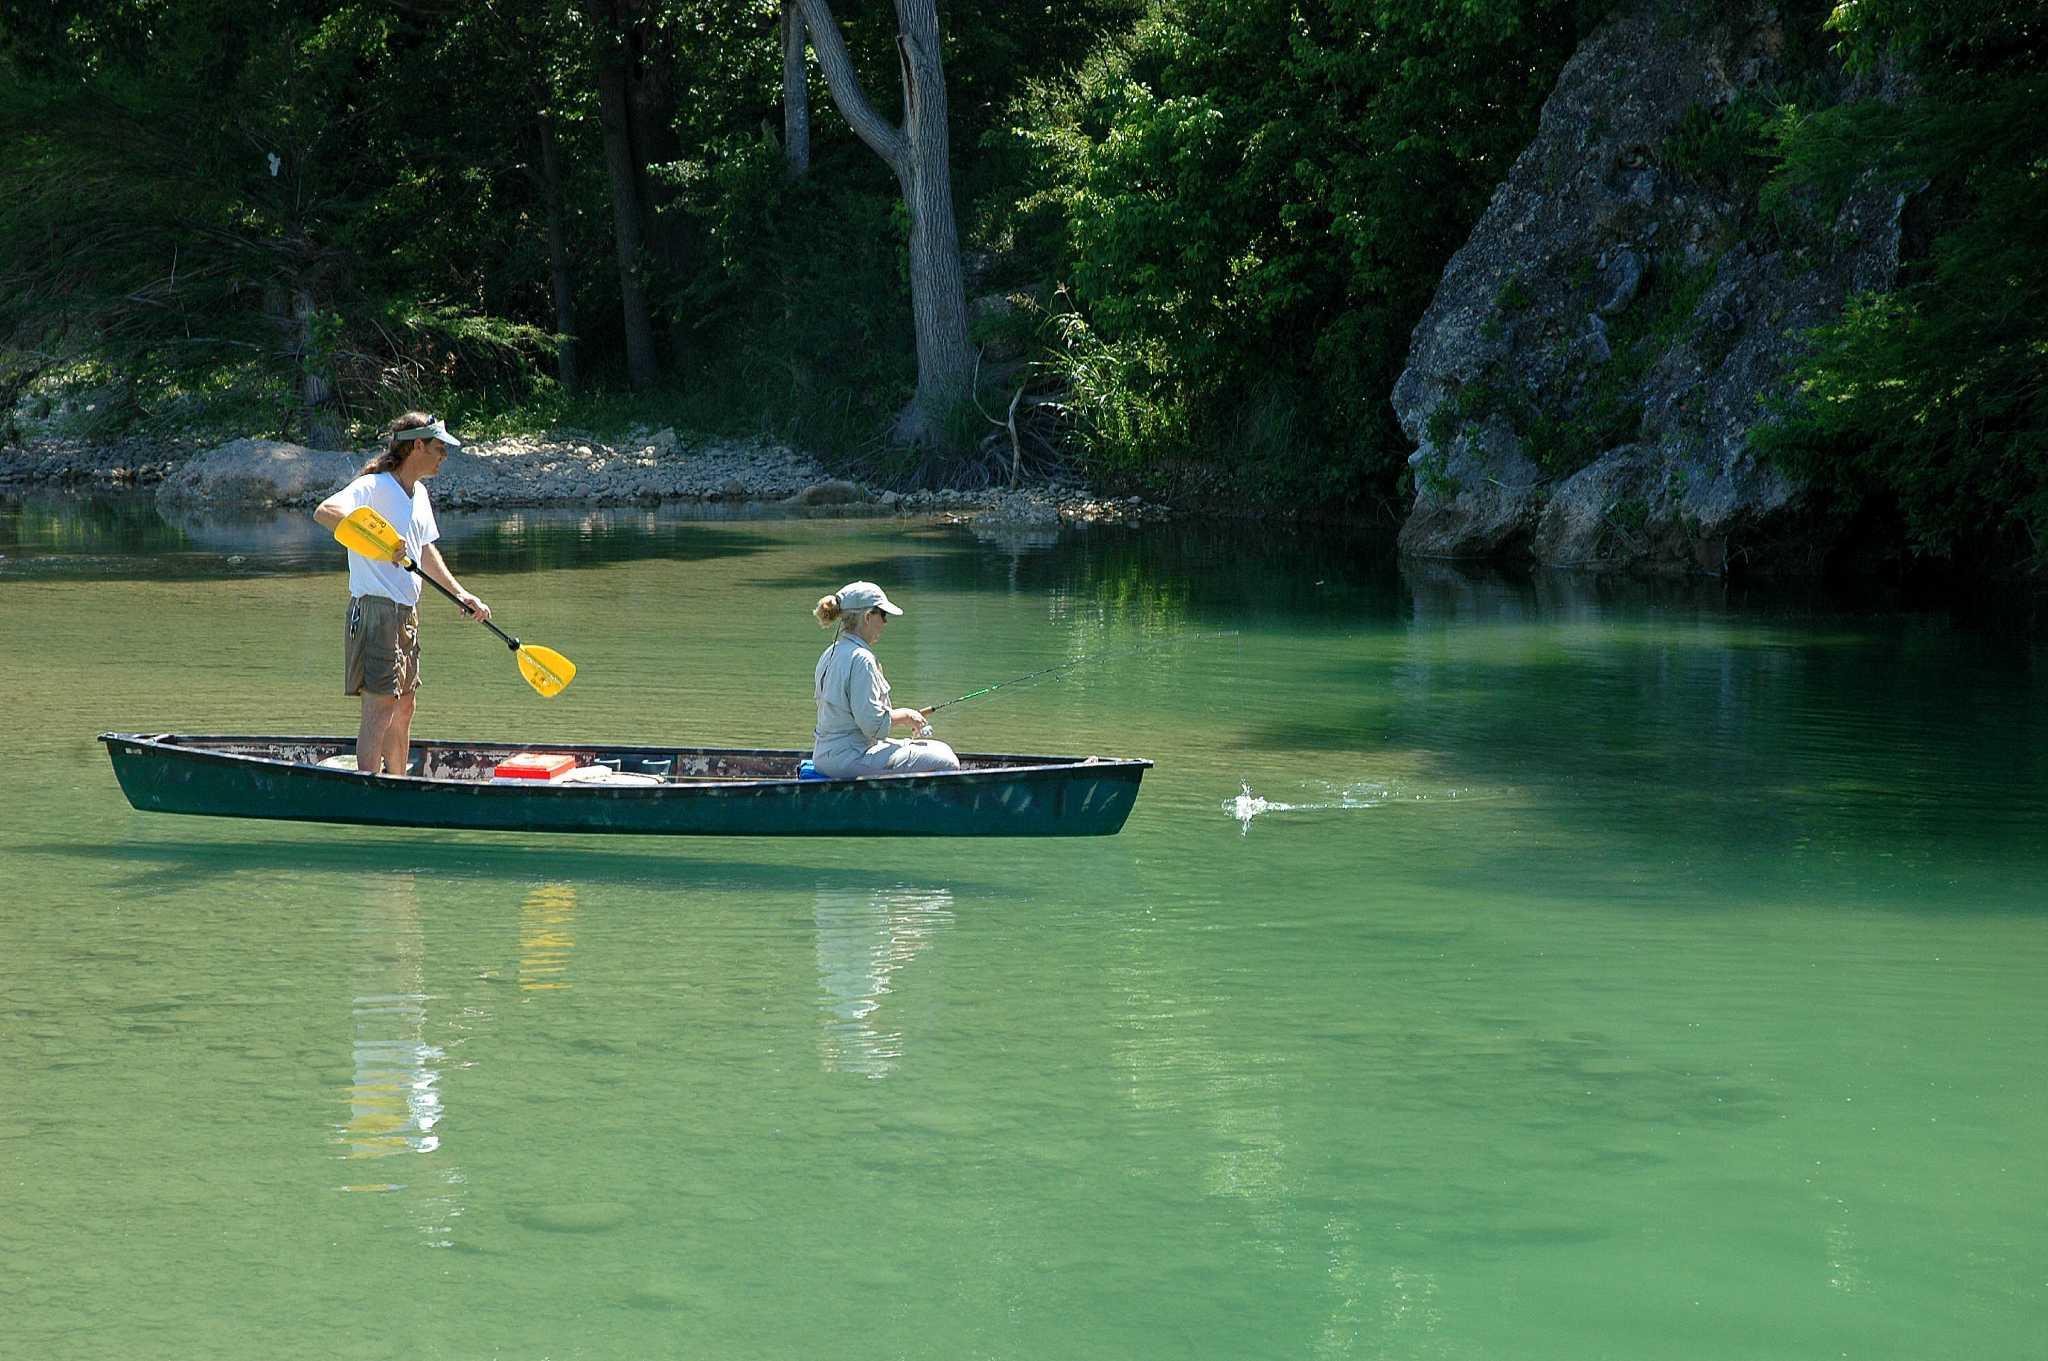 River fishing heats up in autumn 39 s cool weather houston for Fishing in houston